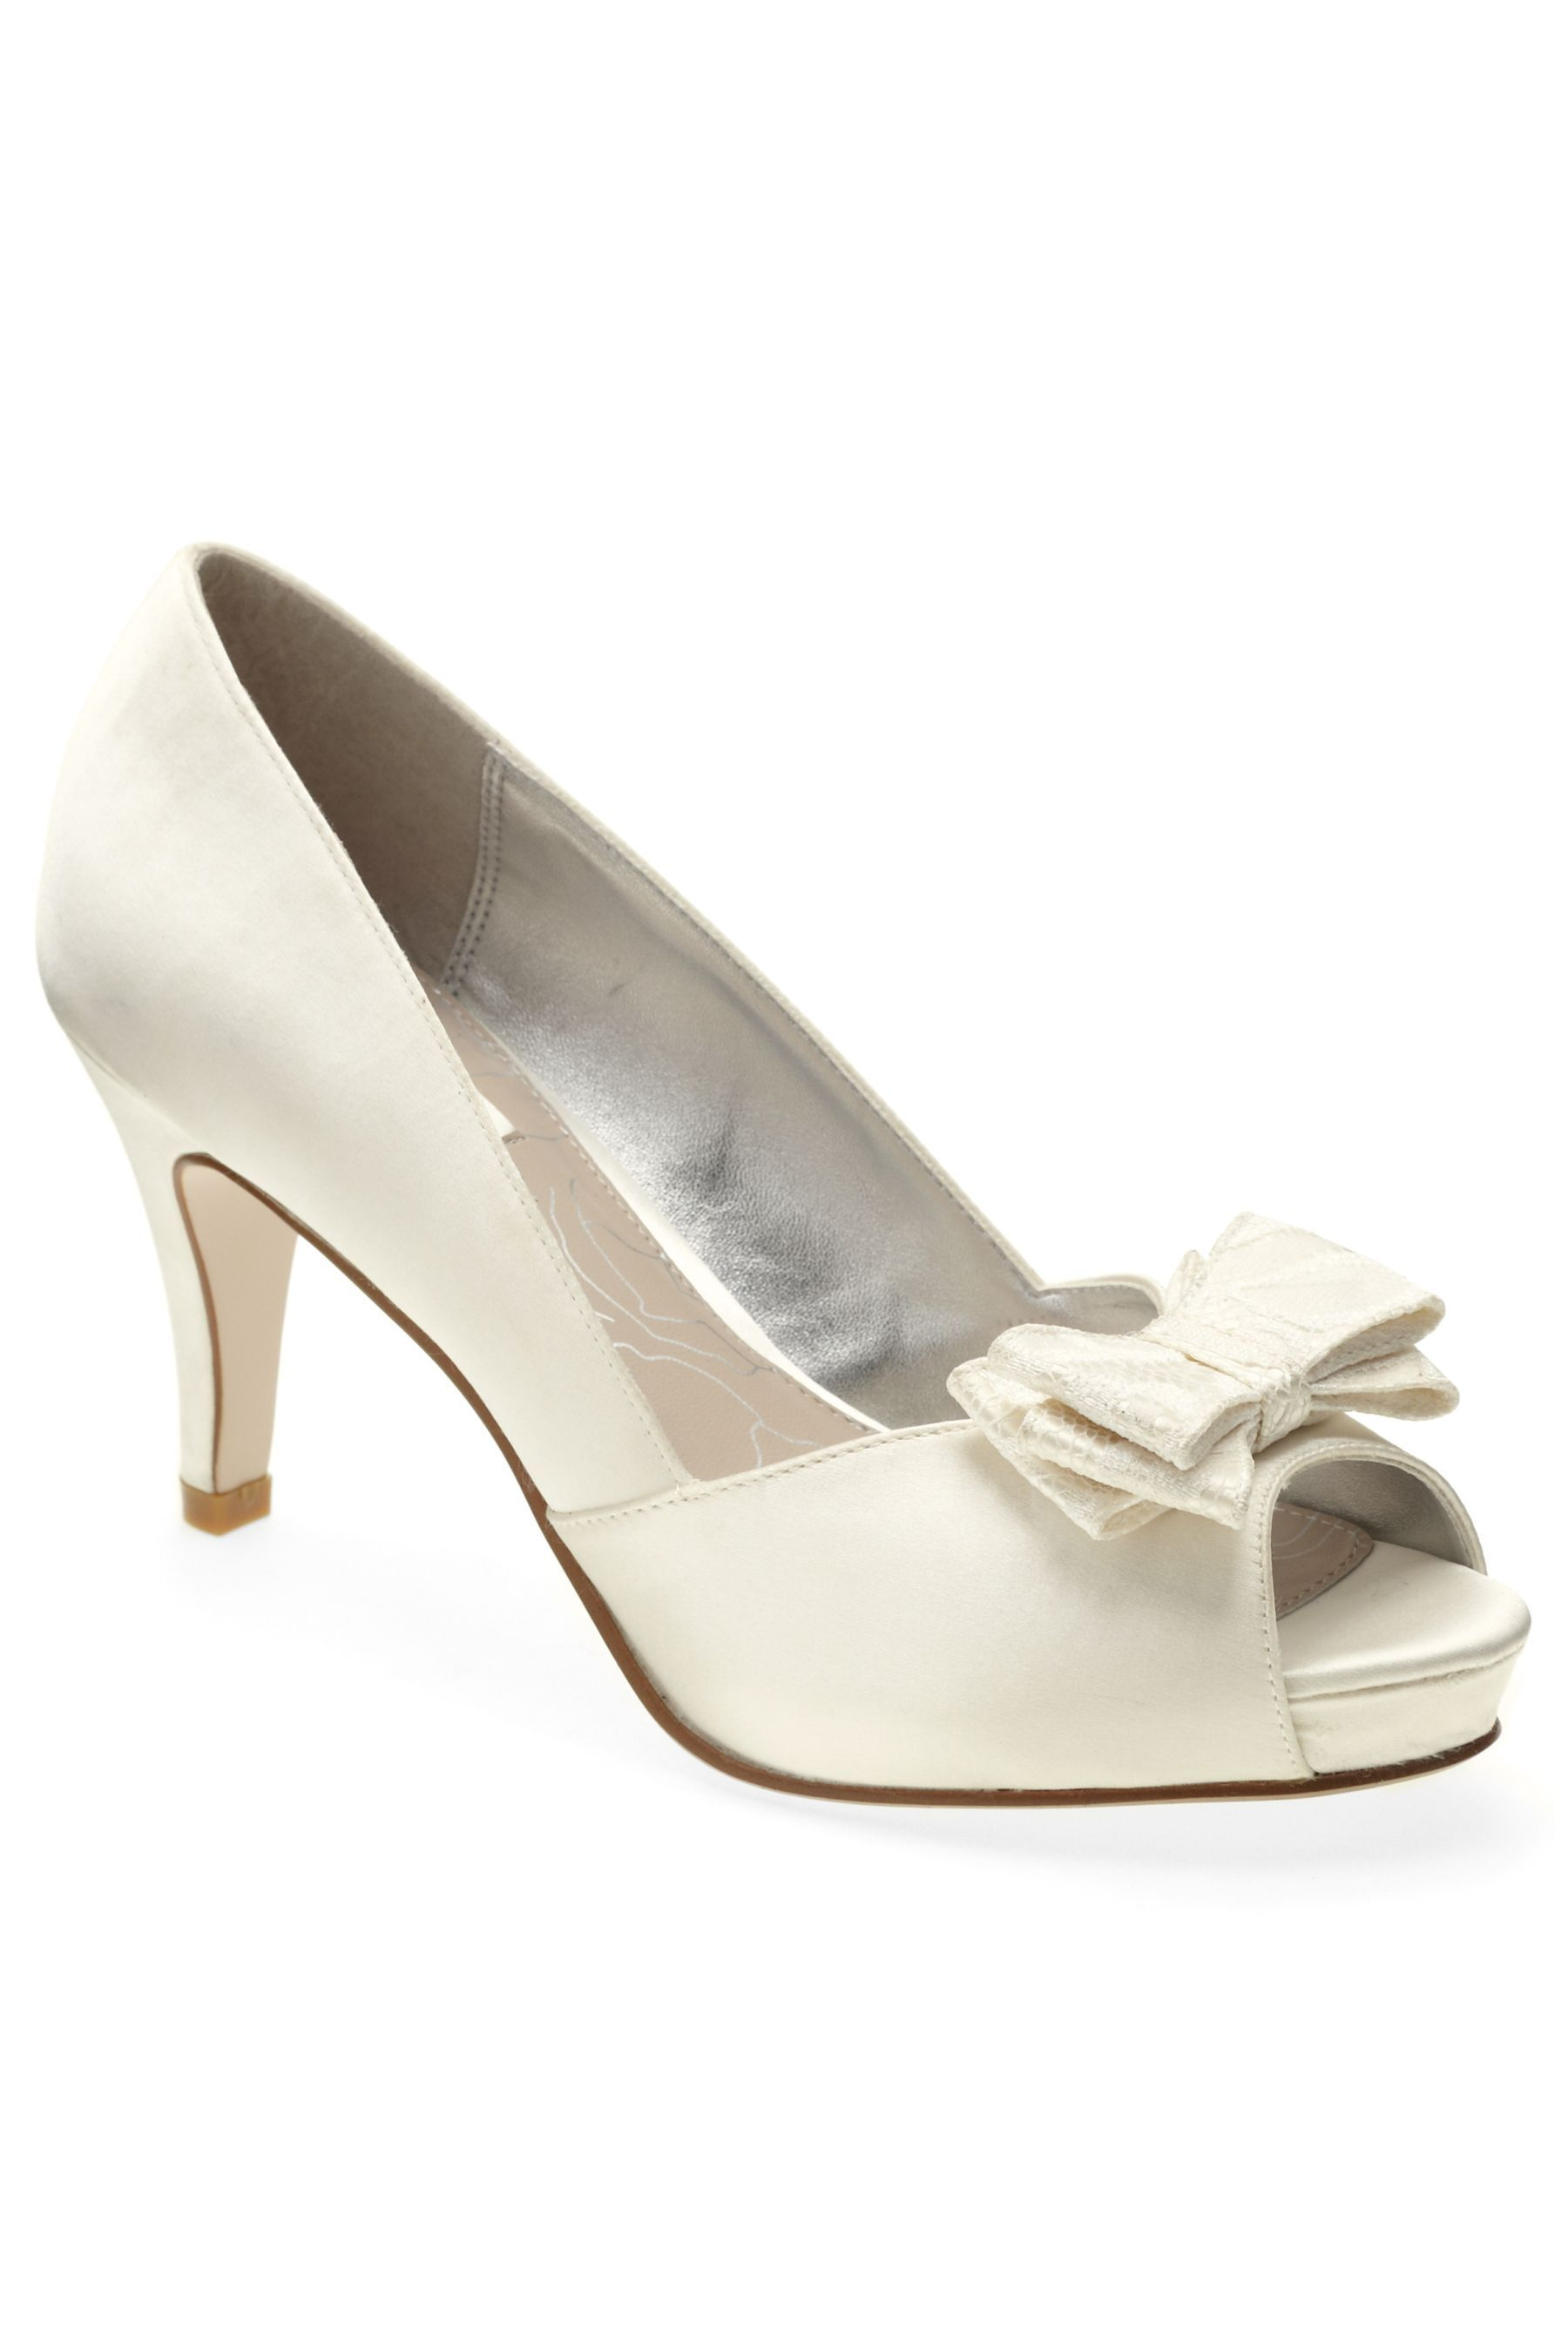 Ivory Lace Bow Peep Toe Court Shoes From Next UK